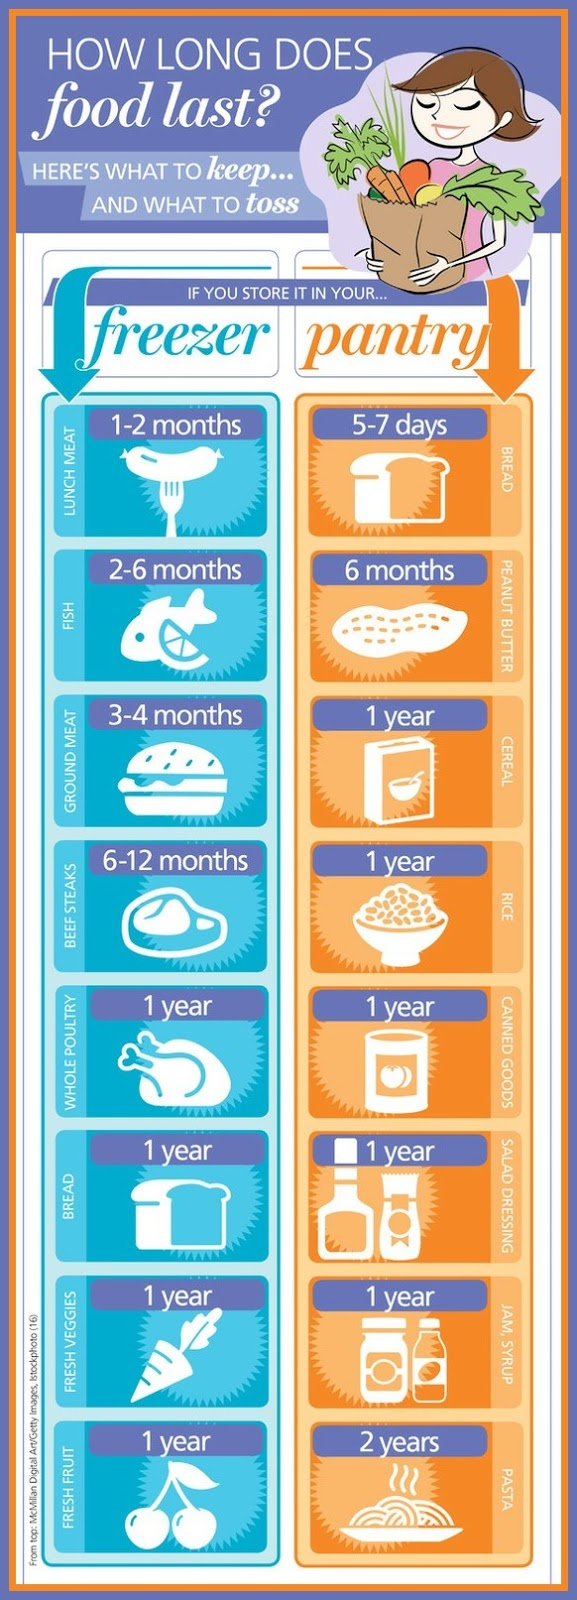 how long does food last health tips in pics. Black Bedroom Furniture Sets. Home Design Ideas